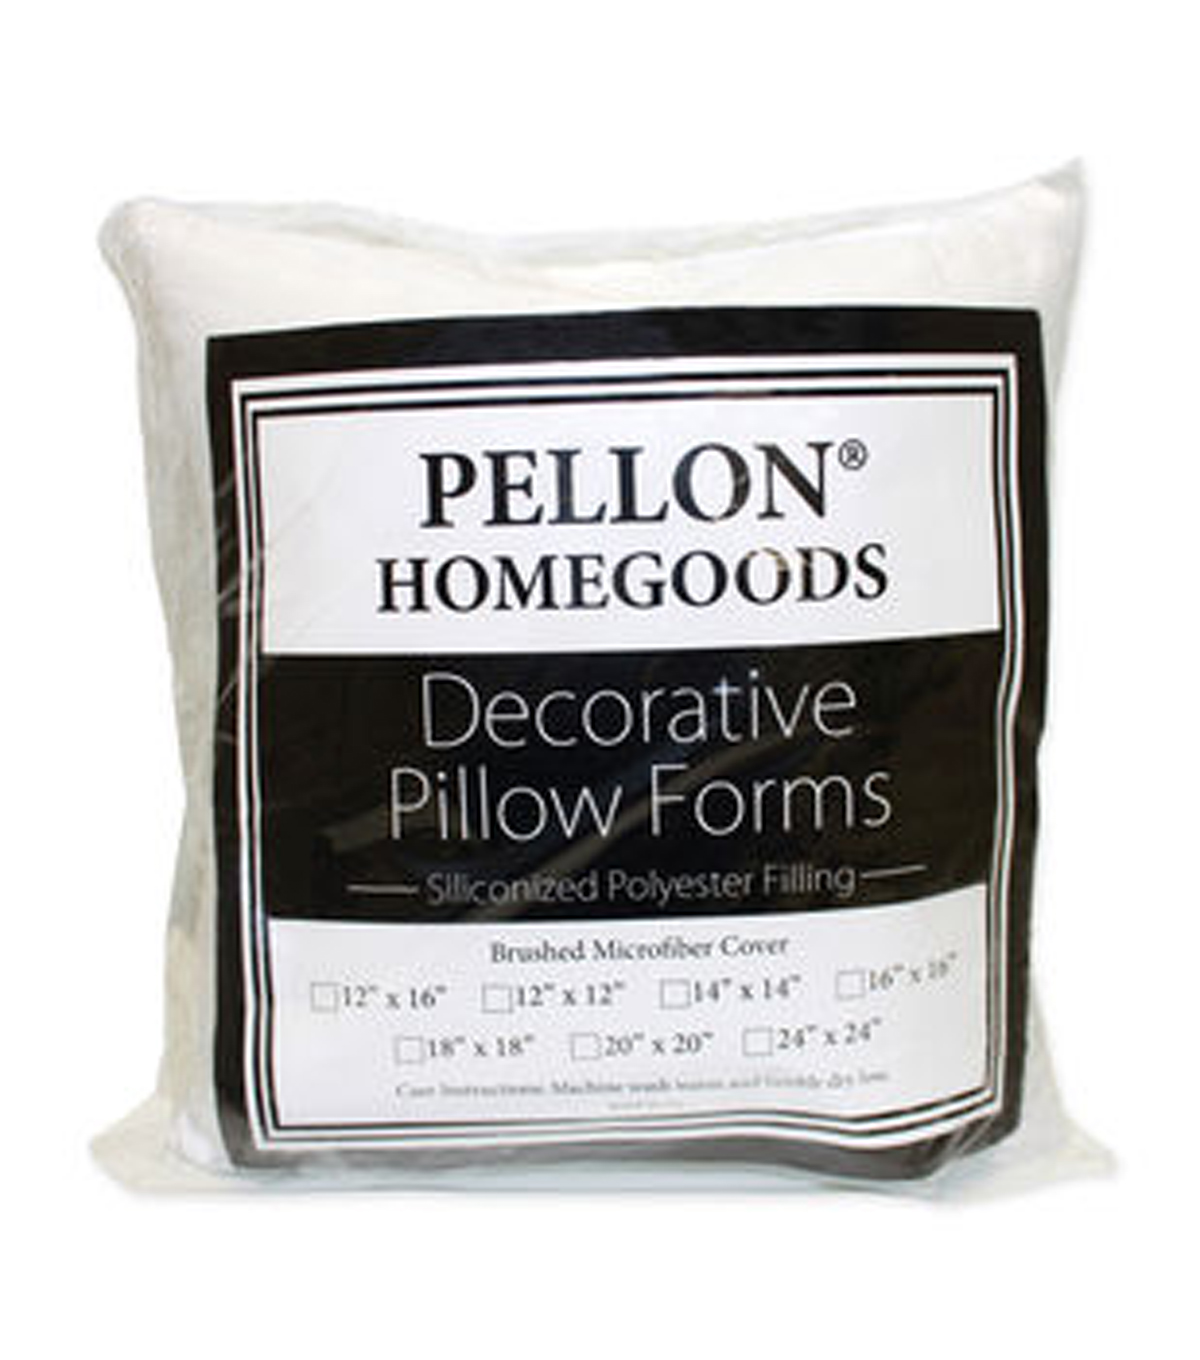 Pellon Decorative 18\u0022 x 18\u0022 Microfiber Pillow Form